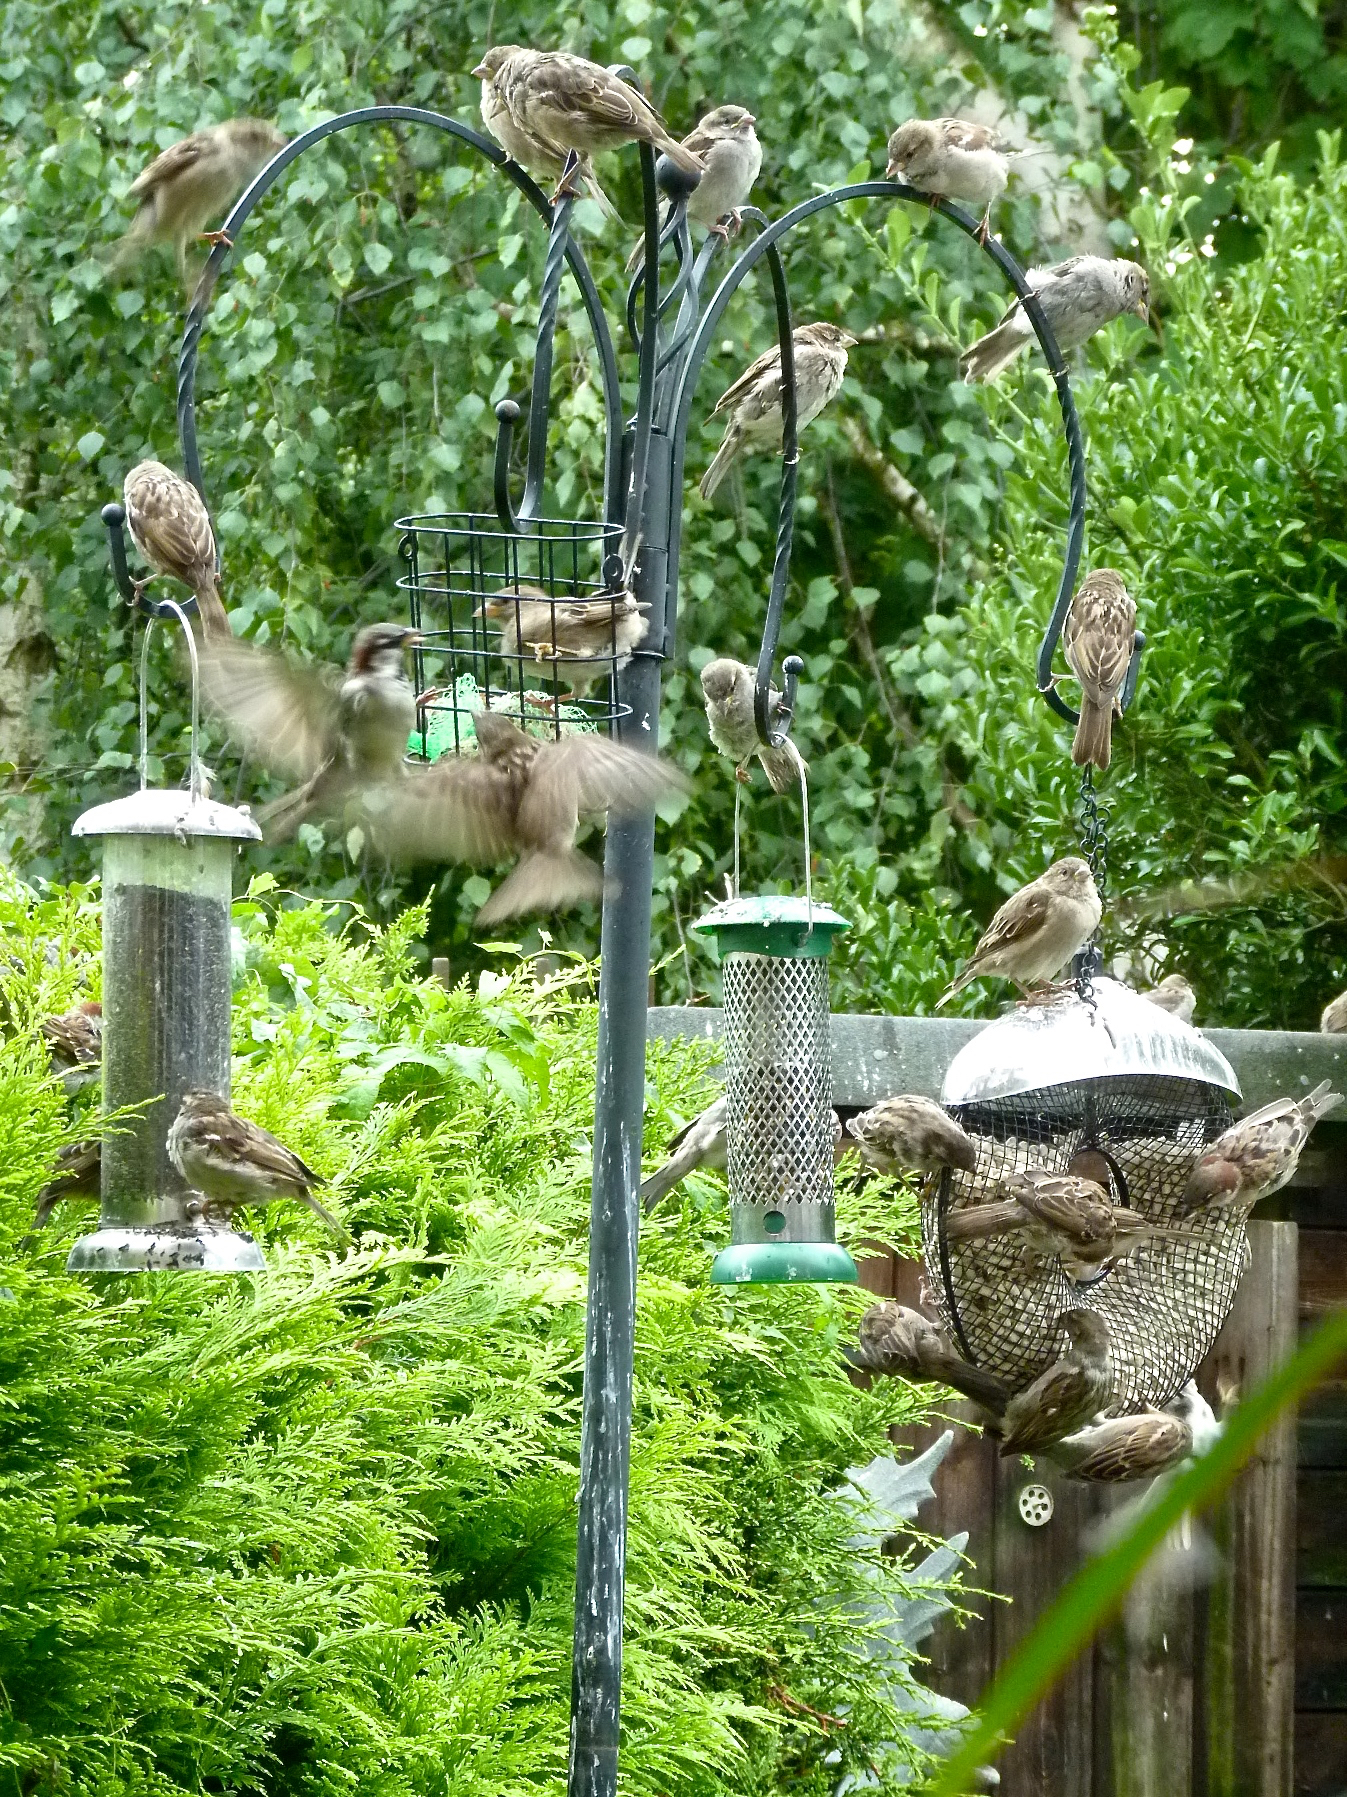 """This is our bird feeder.I protect the birds who eat here from Foxykins and from kitty cats. If someone shouts """"Kitty!"""", I run into the garden barking and chase the cats away! Kitty is a word I know. The birds in this picture are called sparrows. How many sparrows can you count?"""